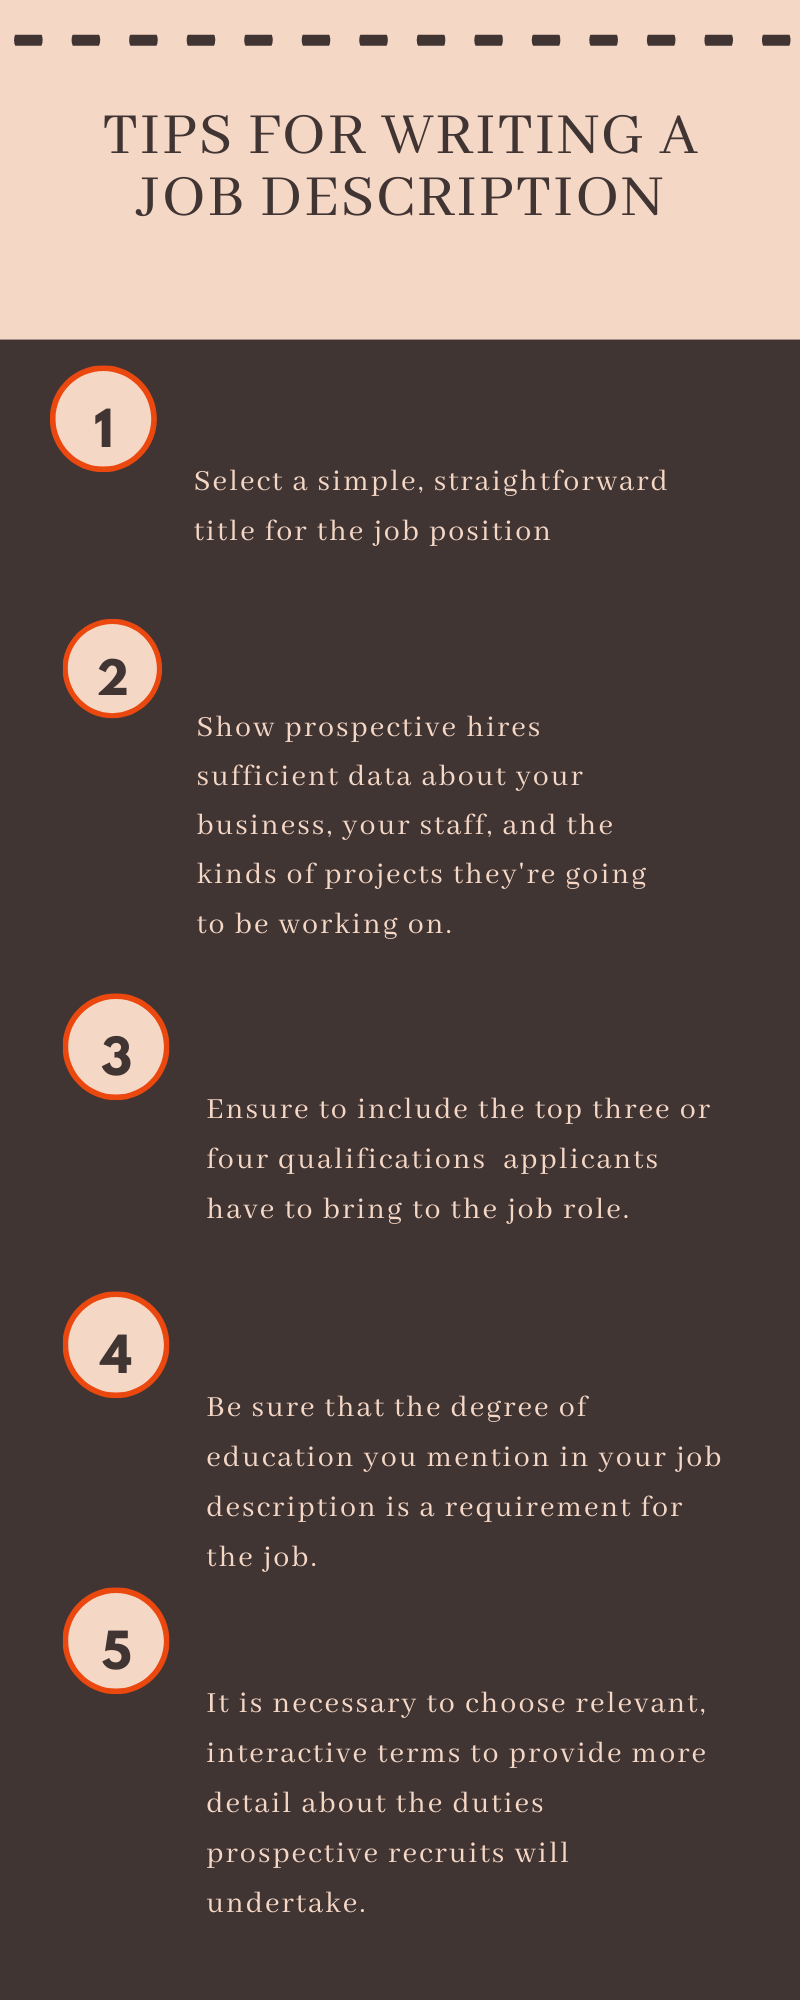 Image for part: Tips for writing a remote job posting